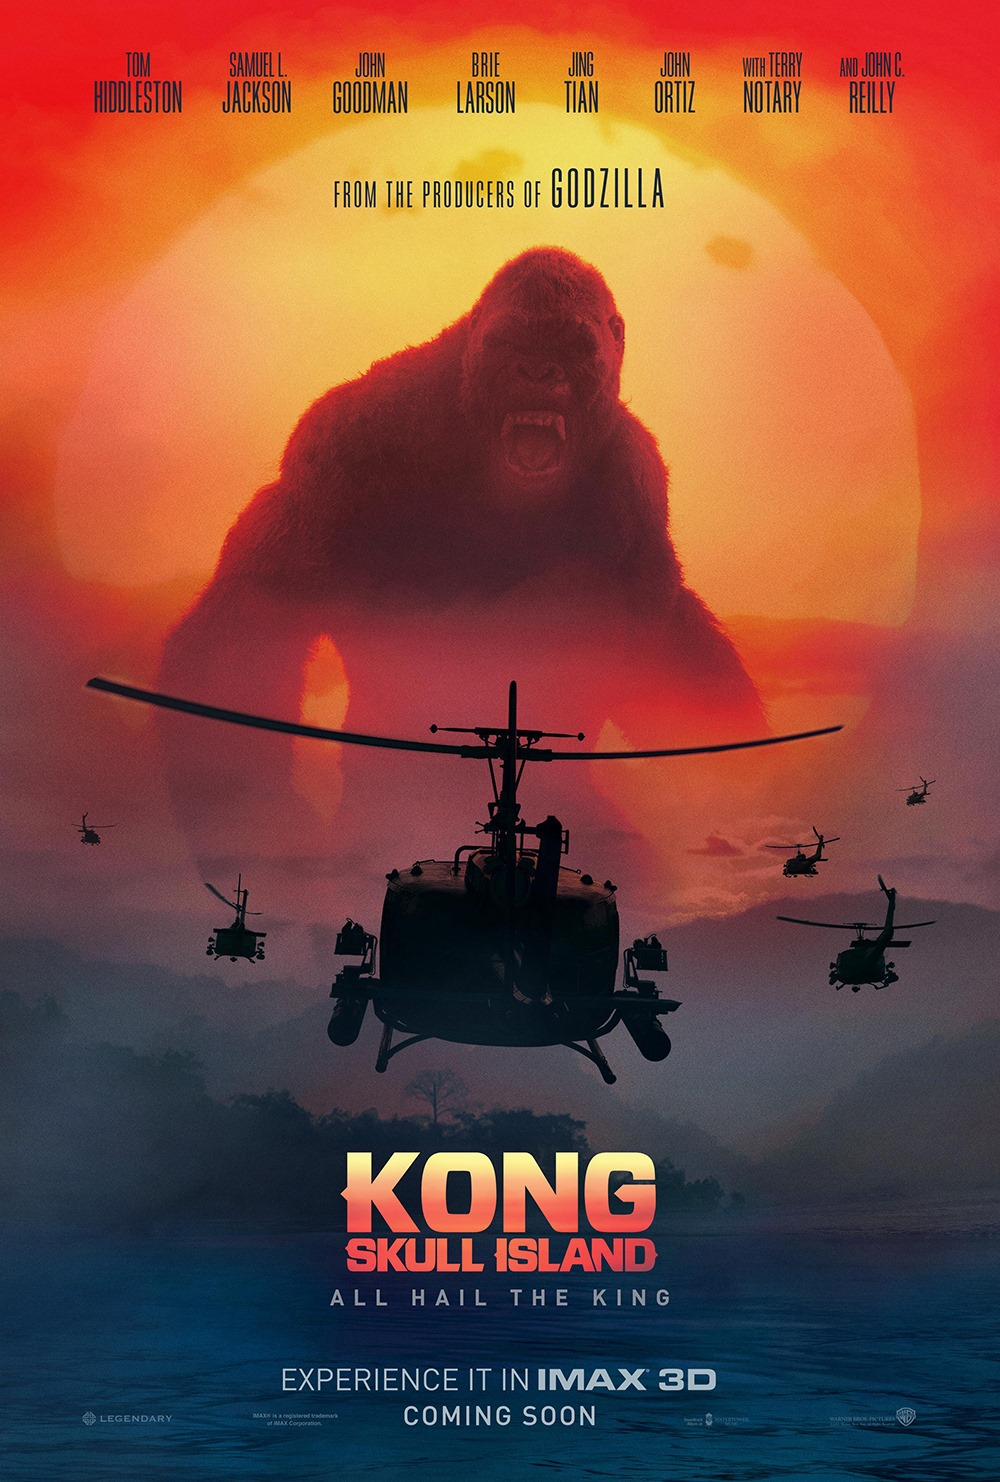 2 Cool Extended Spots for KONG: SKULL ISLAND Focus on a Place Where Myth and Science Meet-social